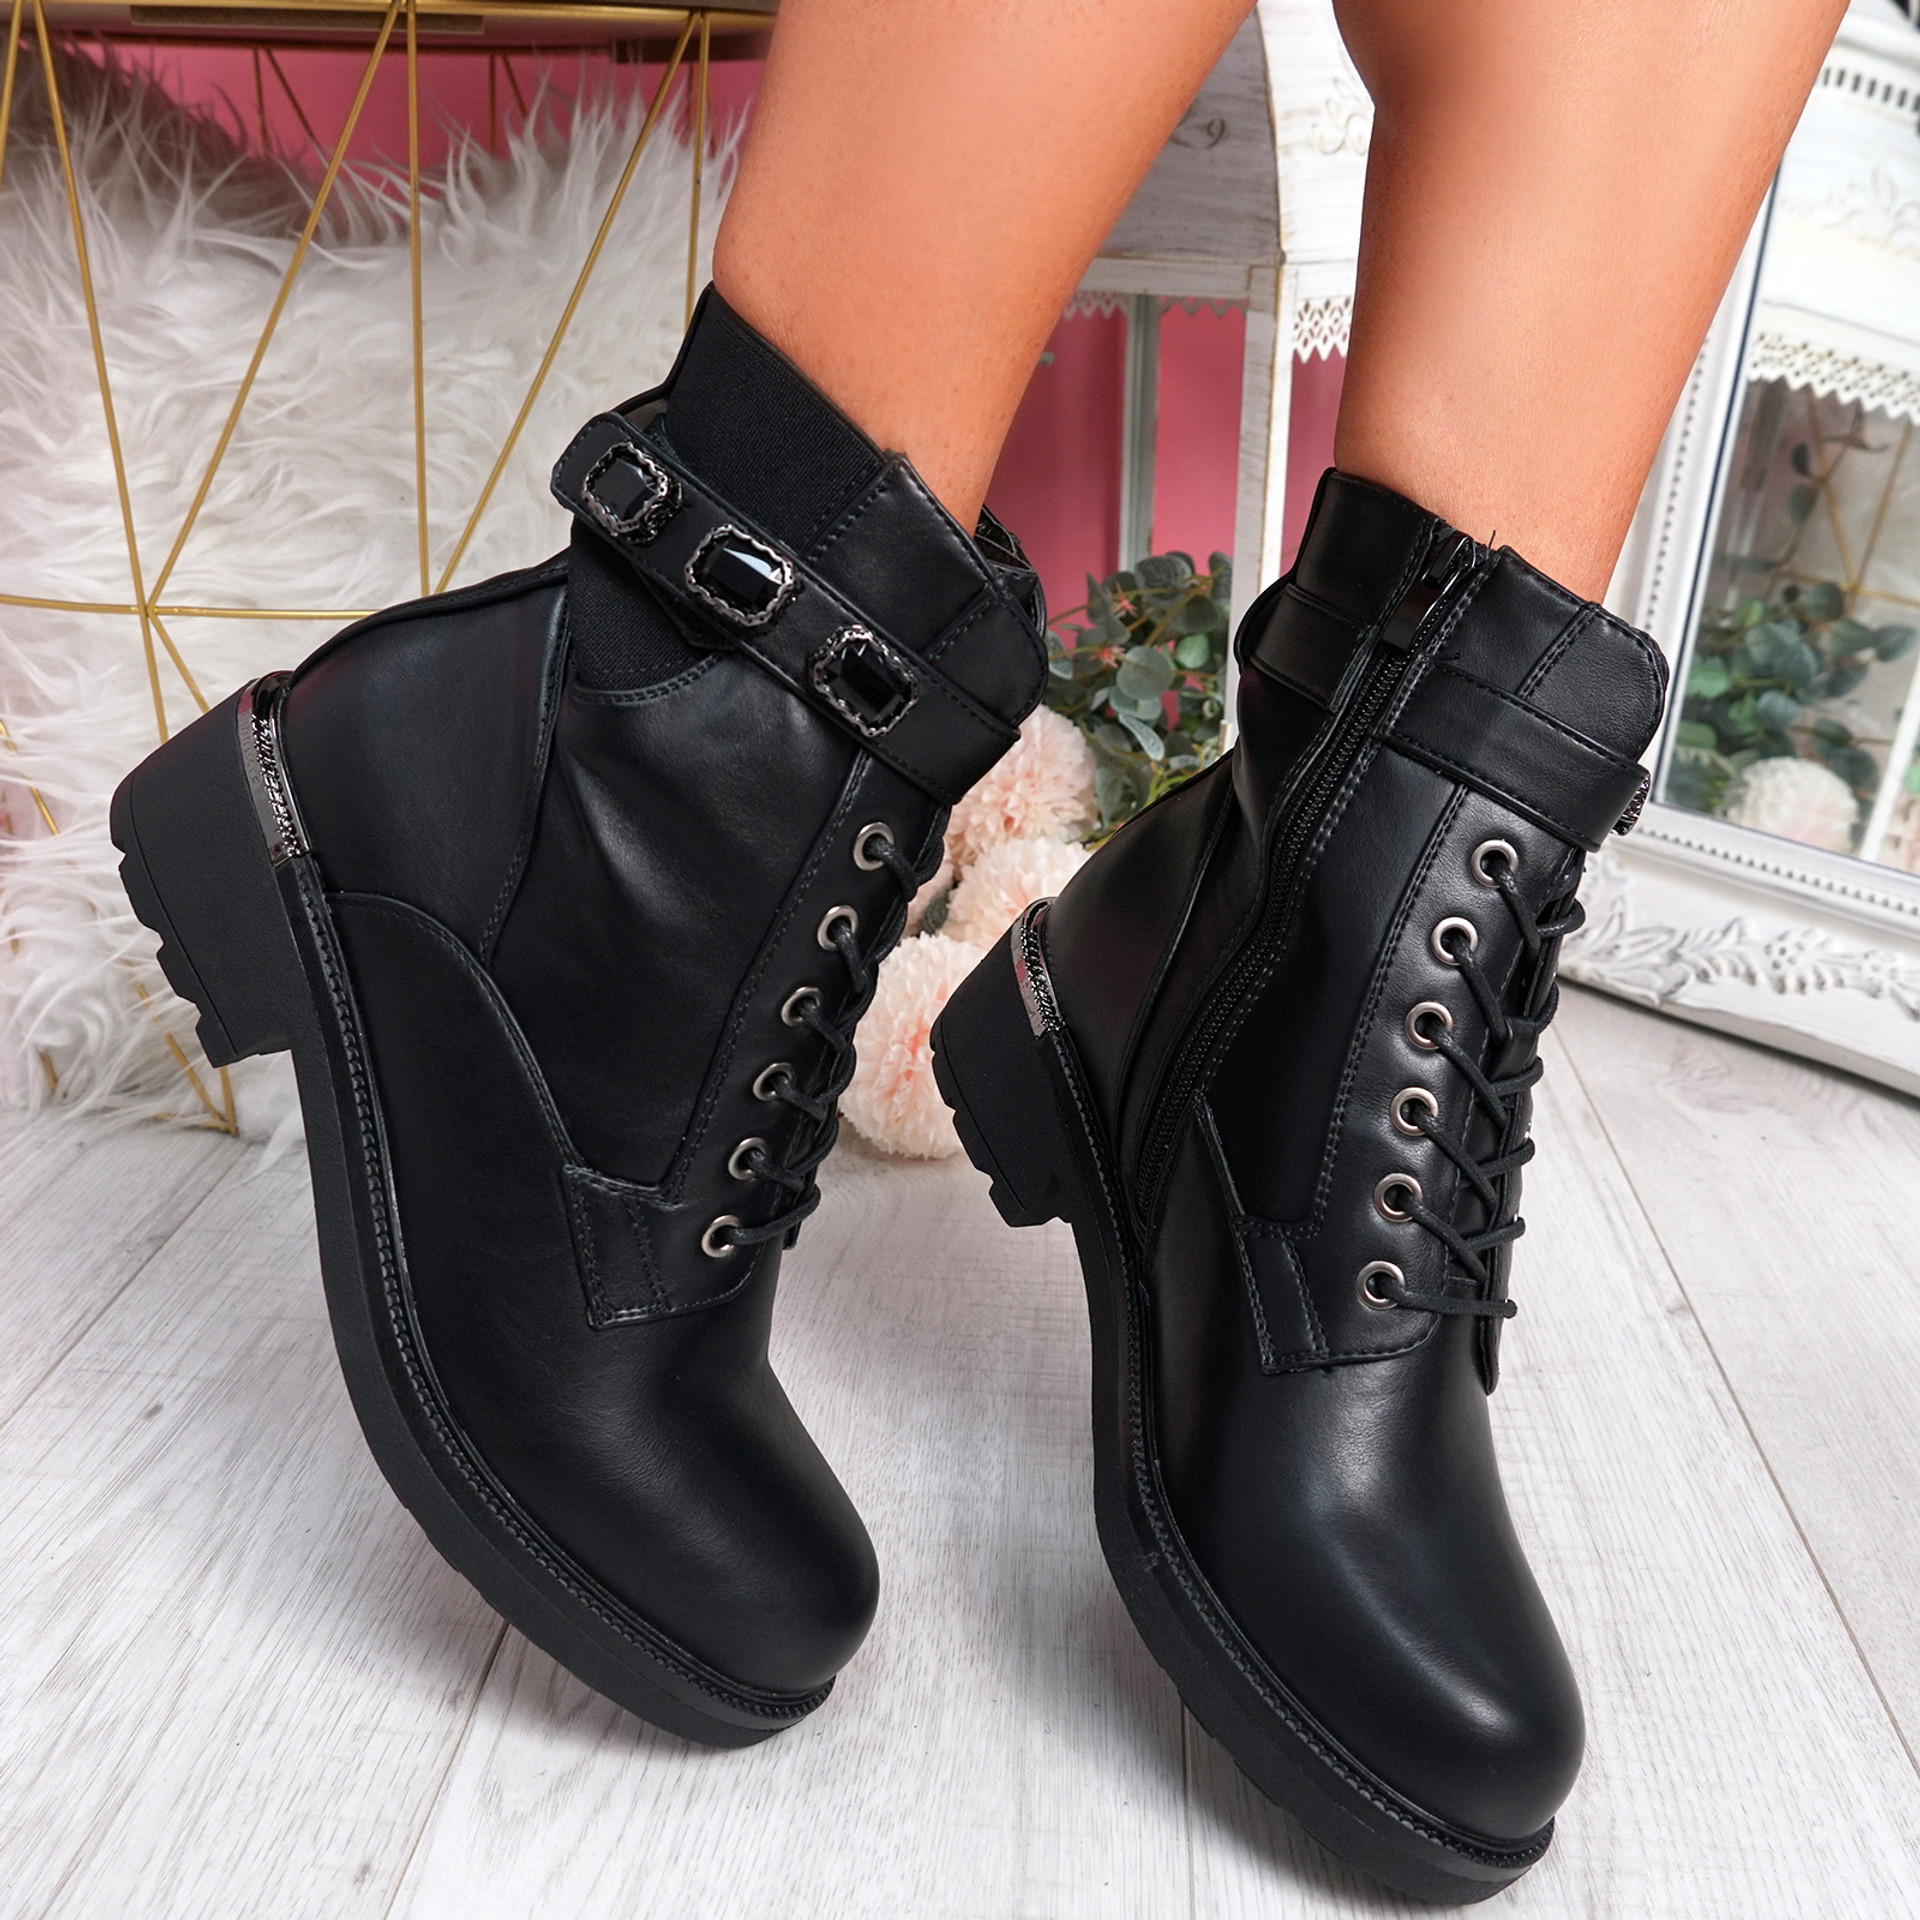 Noje Black Zip Ankle Boots